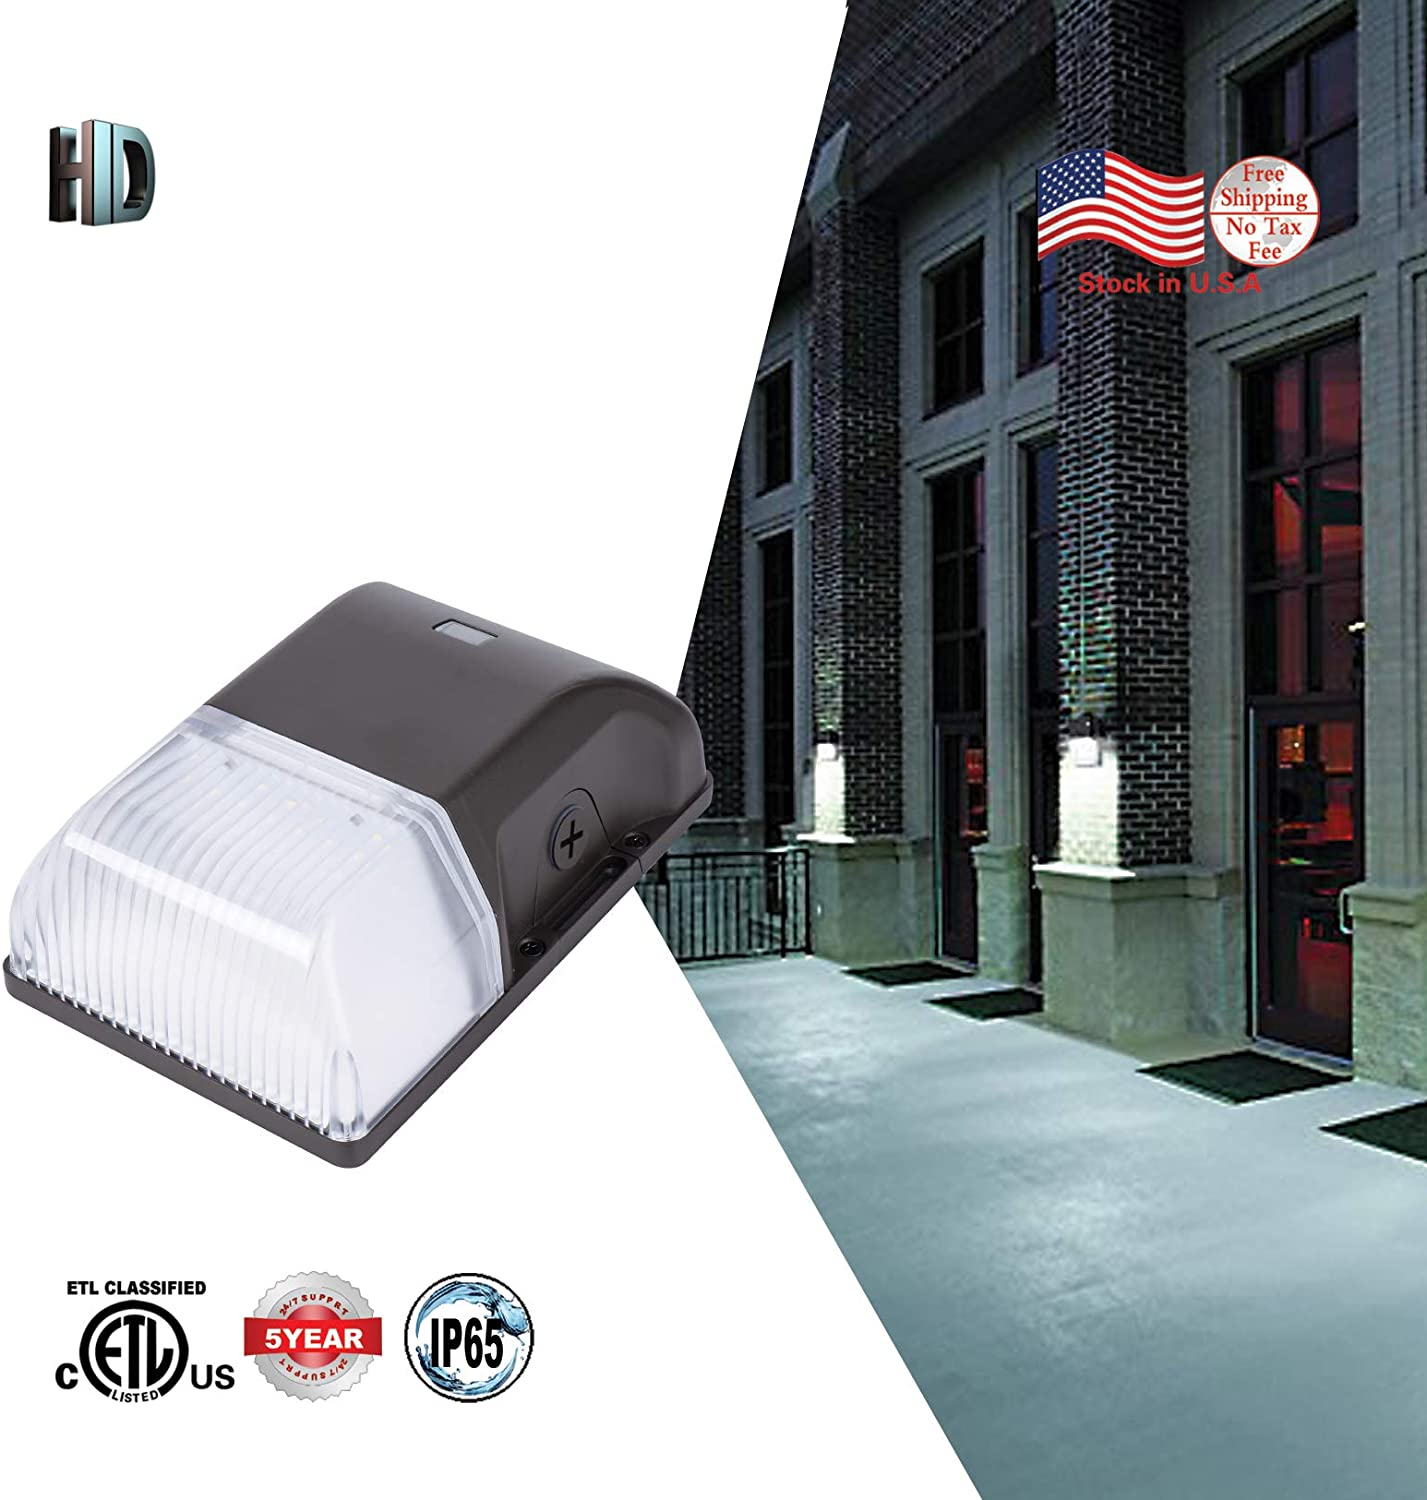 LED Wall Pack Light,15W 1950Lumens,5000K with Photocell Sensor Dusk to Dawn Waterproof IP65 Outdoor Security Light,ETL Listed,5 Years Warranty(1 Pack)